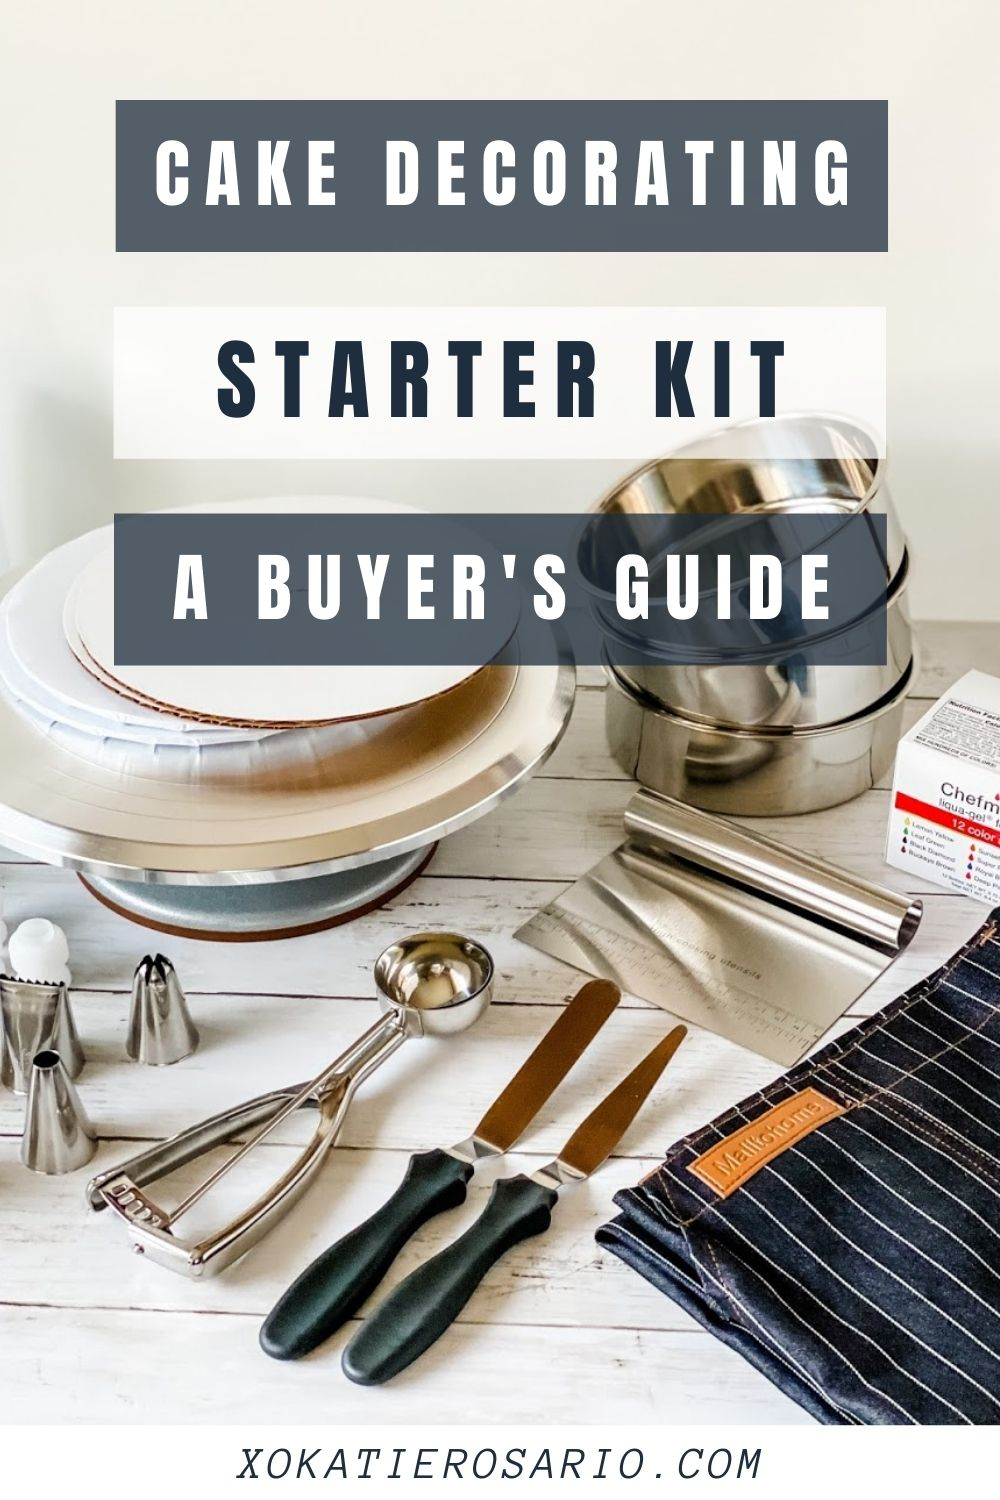 When we learn a new skill, it's nice to know what we need to get started. Learn how to put together your first cake decorating starter kit. Created by Katie Rosario, XOKatieRosario creates beautiful cake decorating techniques that are easy for beginners and strategically designed for any home baker. #xokatierosario.com #cakedecoratingcourse #xokatierosario #katierosariocakes #cakedecroratingtips #cakedecoratingstarterkit #decoratingtoolkit